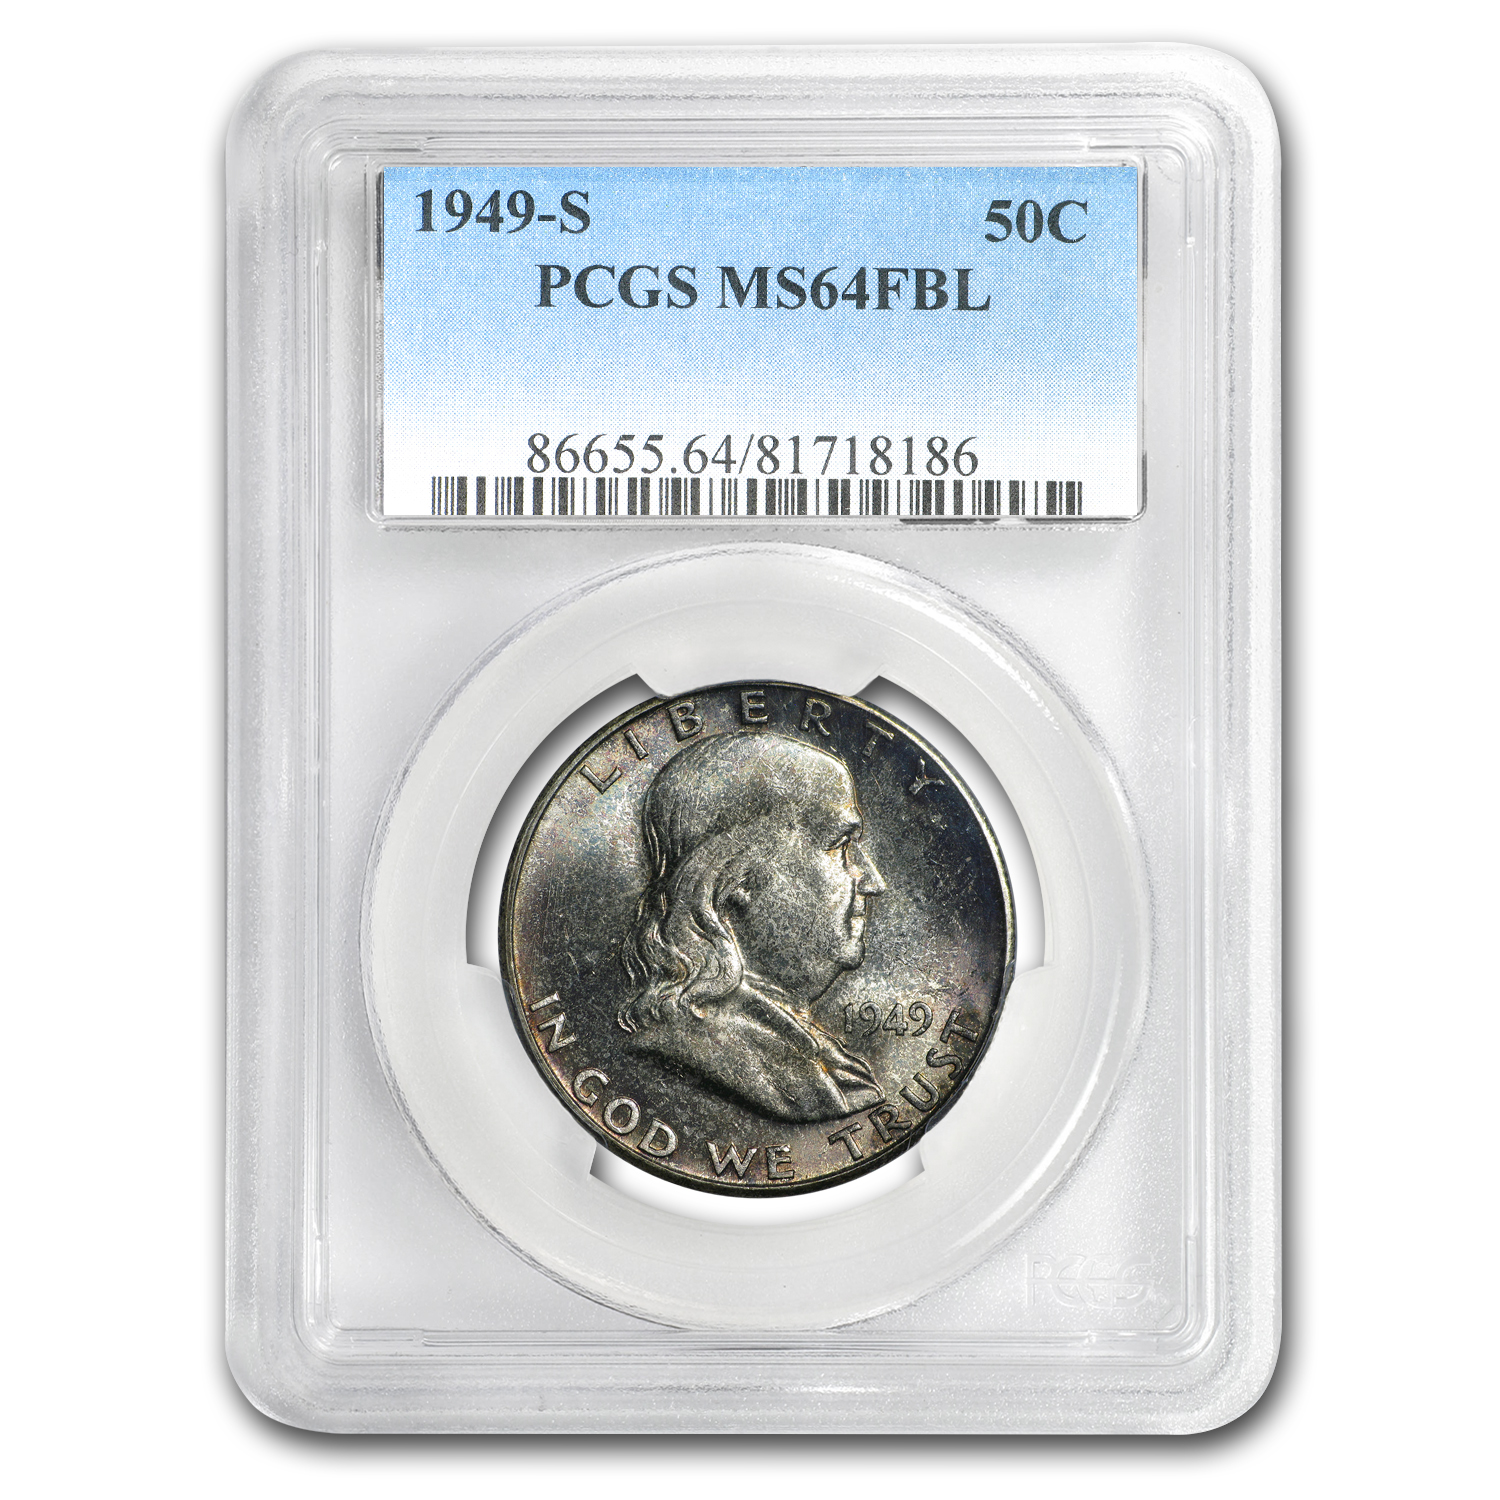 1949-S Franklin Half Dollar MS-64 PCGS (FBL)